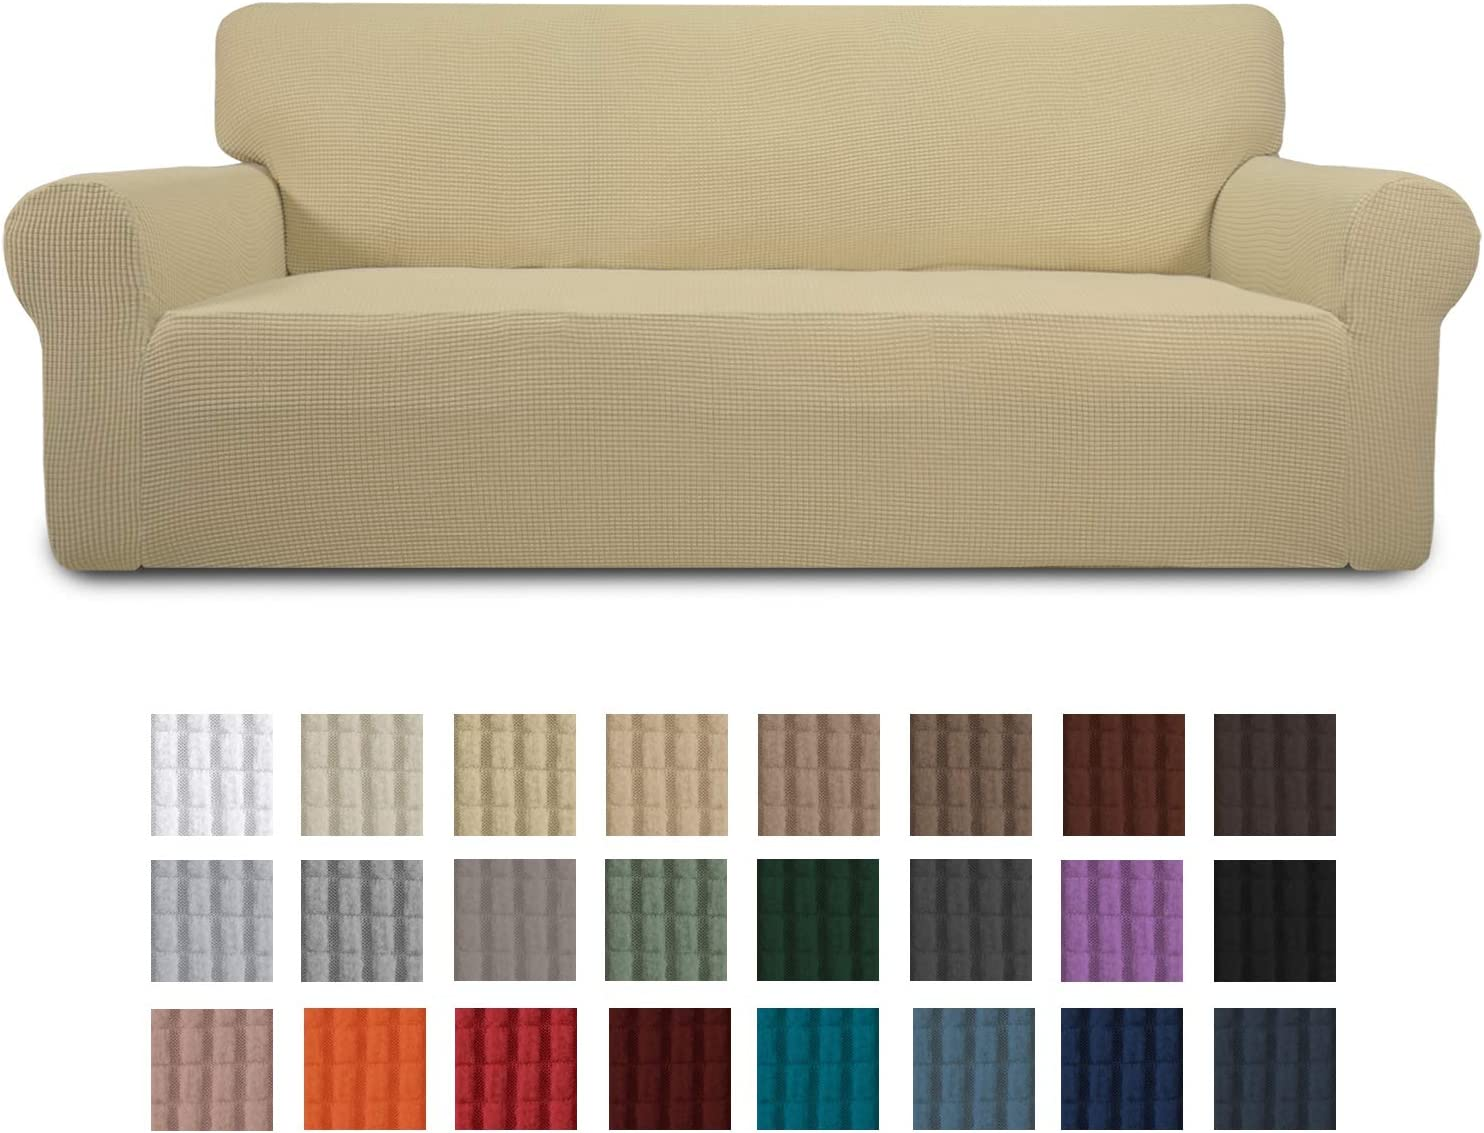 Easy-Going Stretch Sofa Slipcover 1-Piece Couch Sofa Cover Furniture Protector Soft with Elastic Bottom for Kids, Spandex Jacquard Fabric Small Checks(Sofa,Beige)